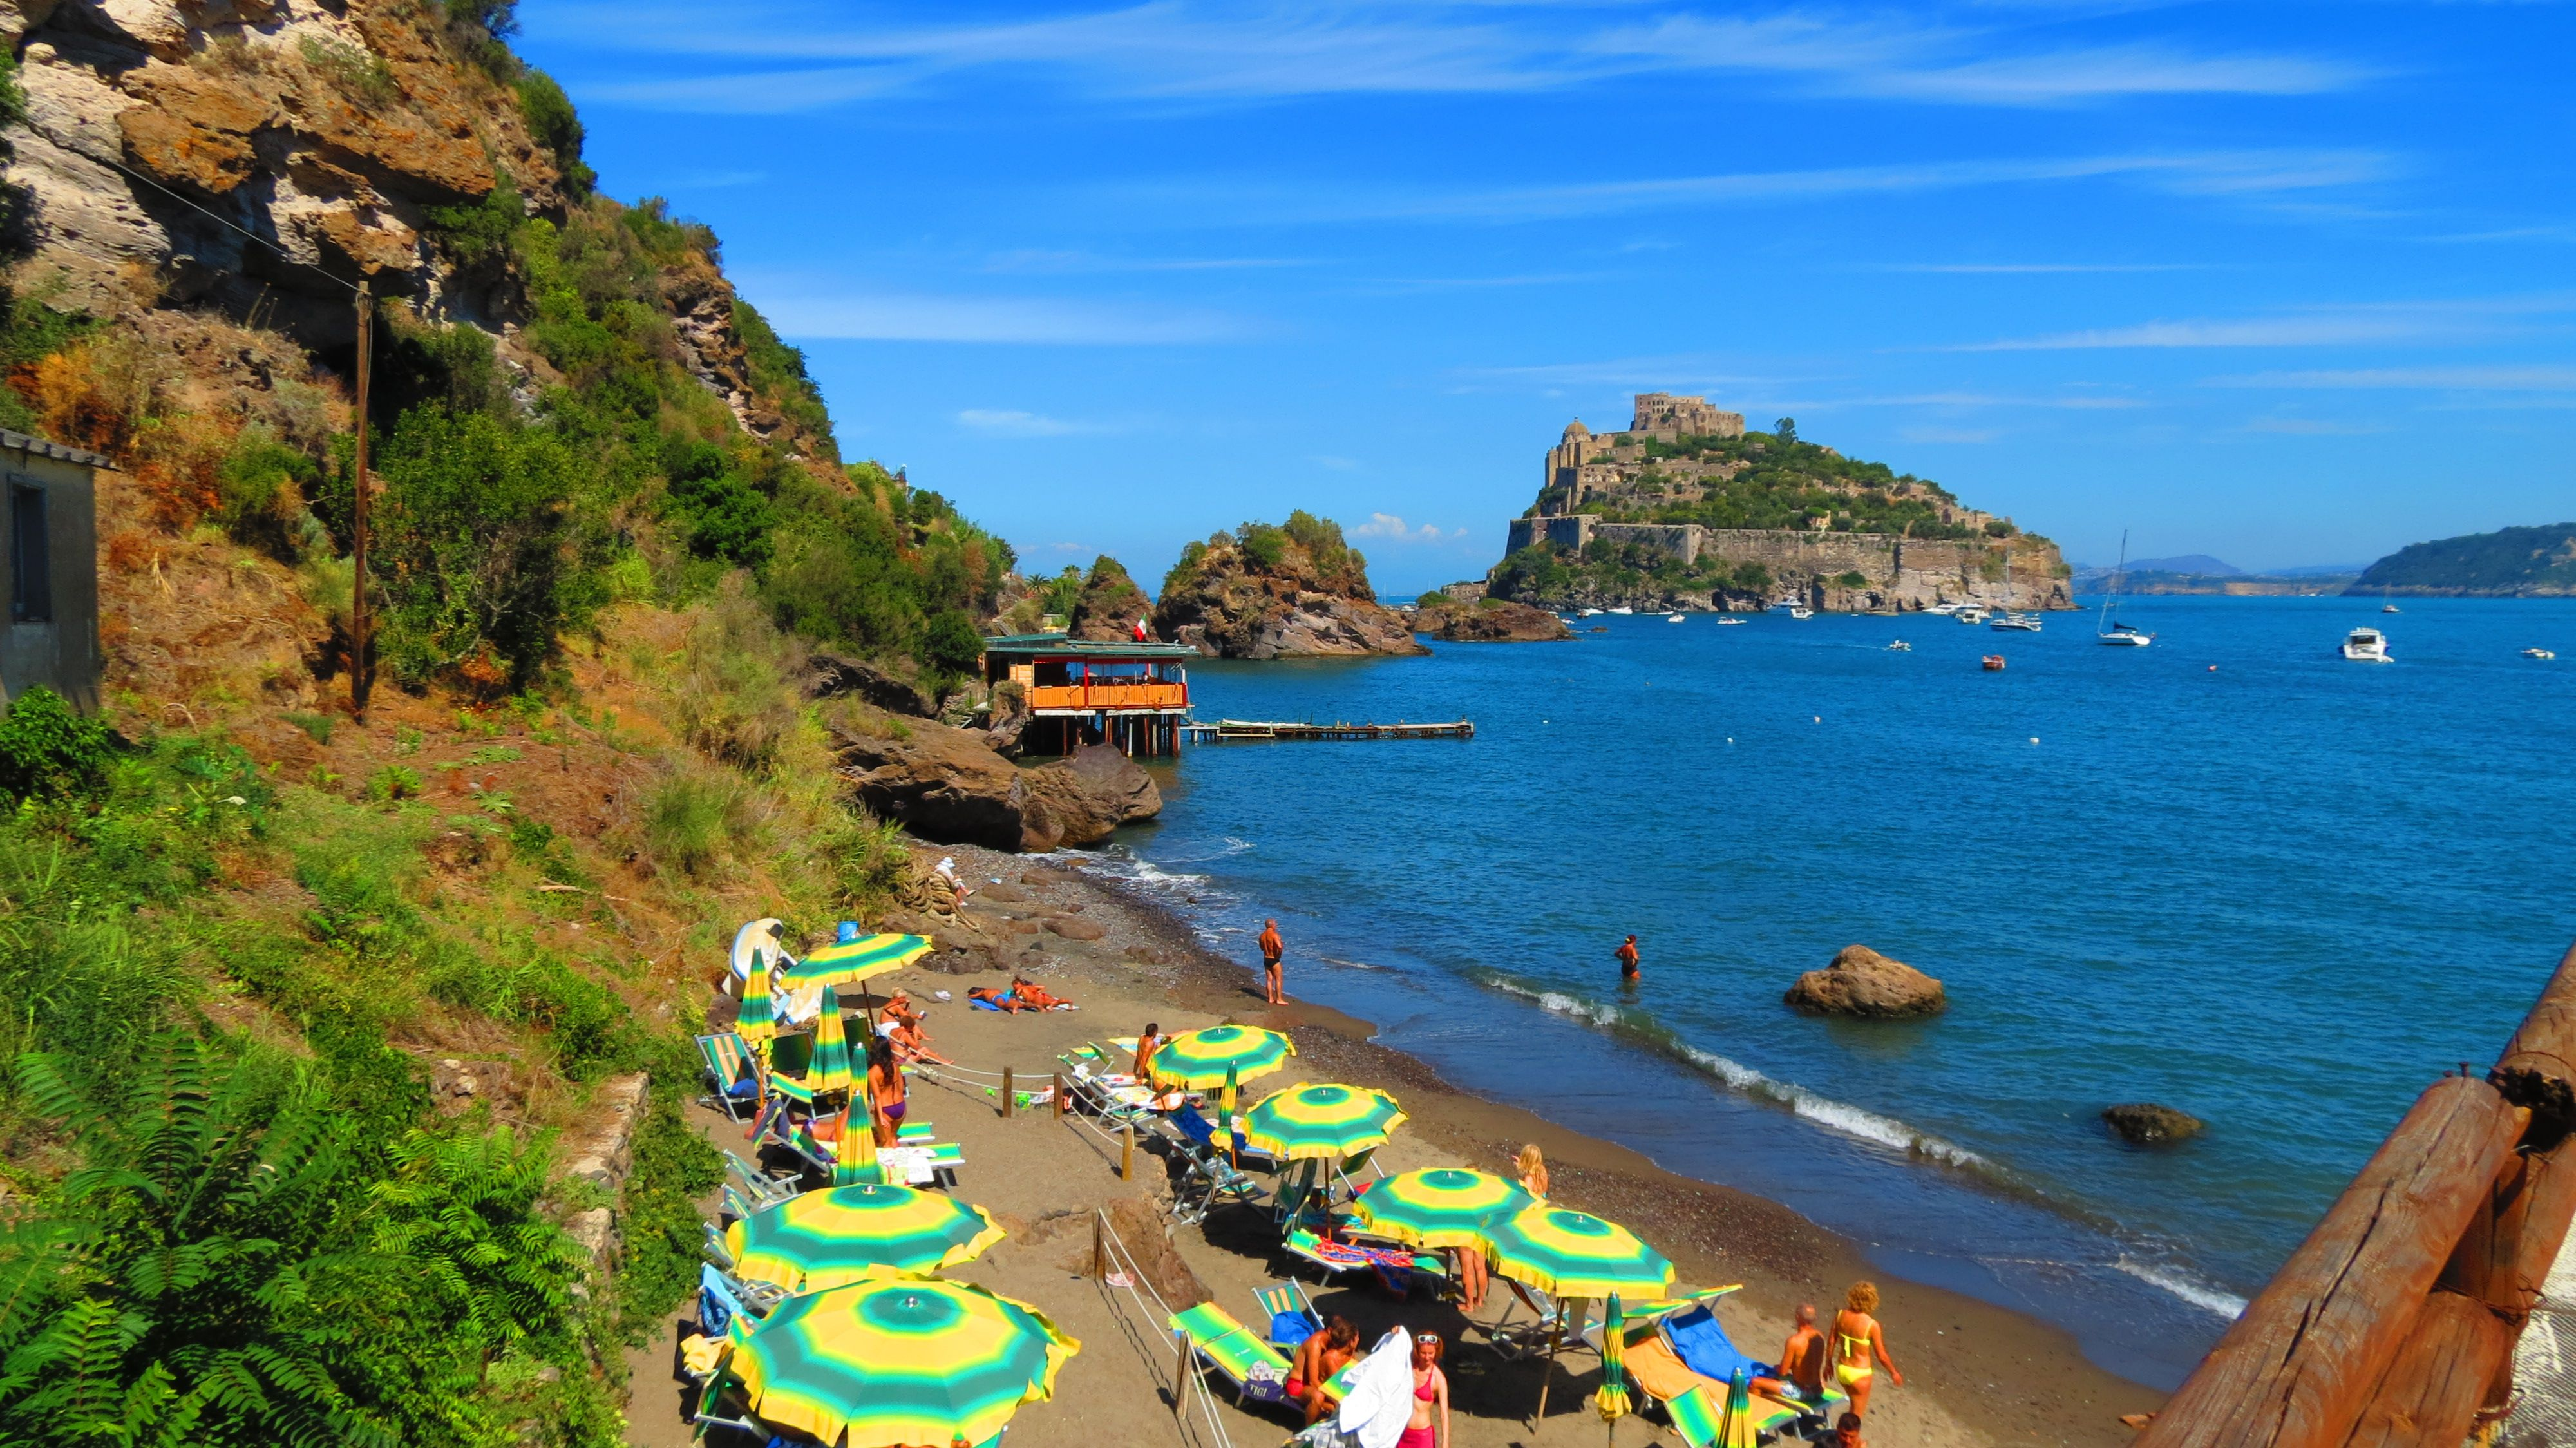 Cartaromana Beach in Ischia Ponte, Ischia. Part of the